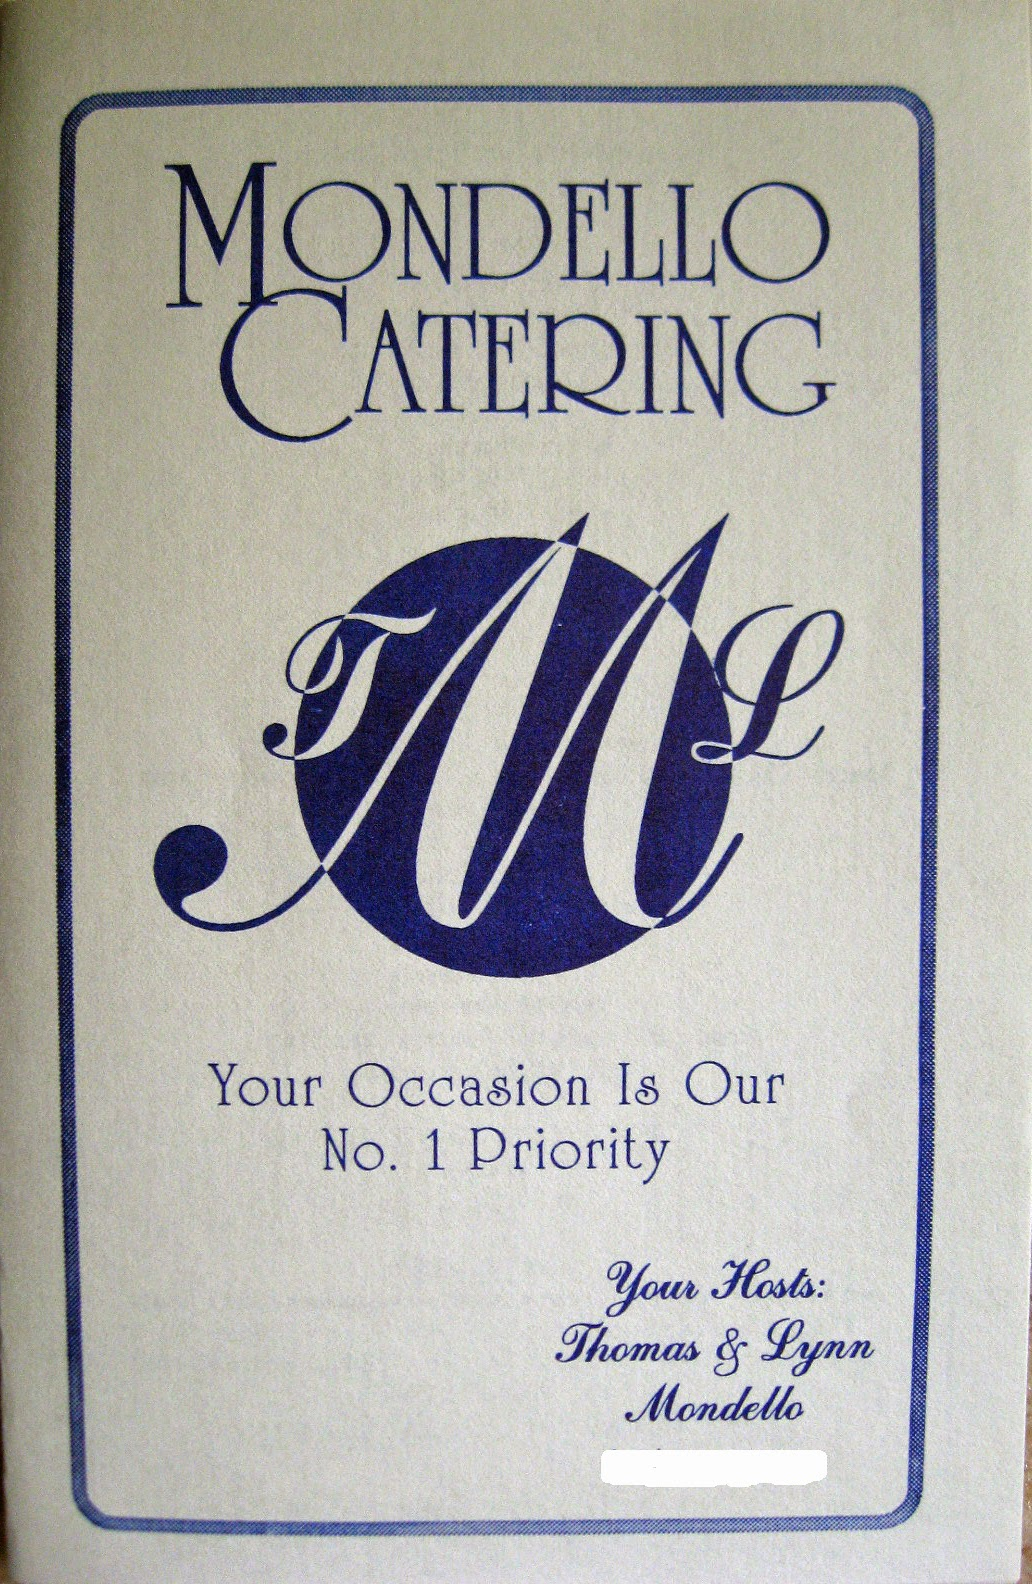 Mondello catering menu